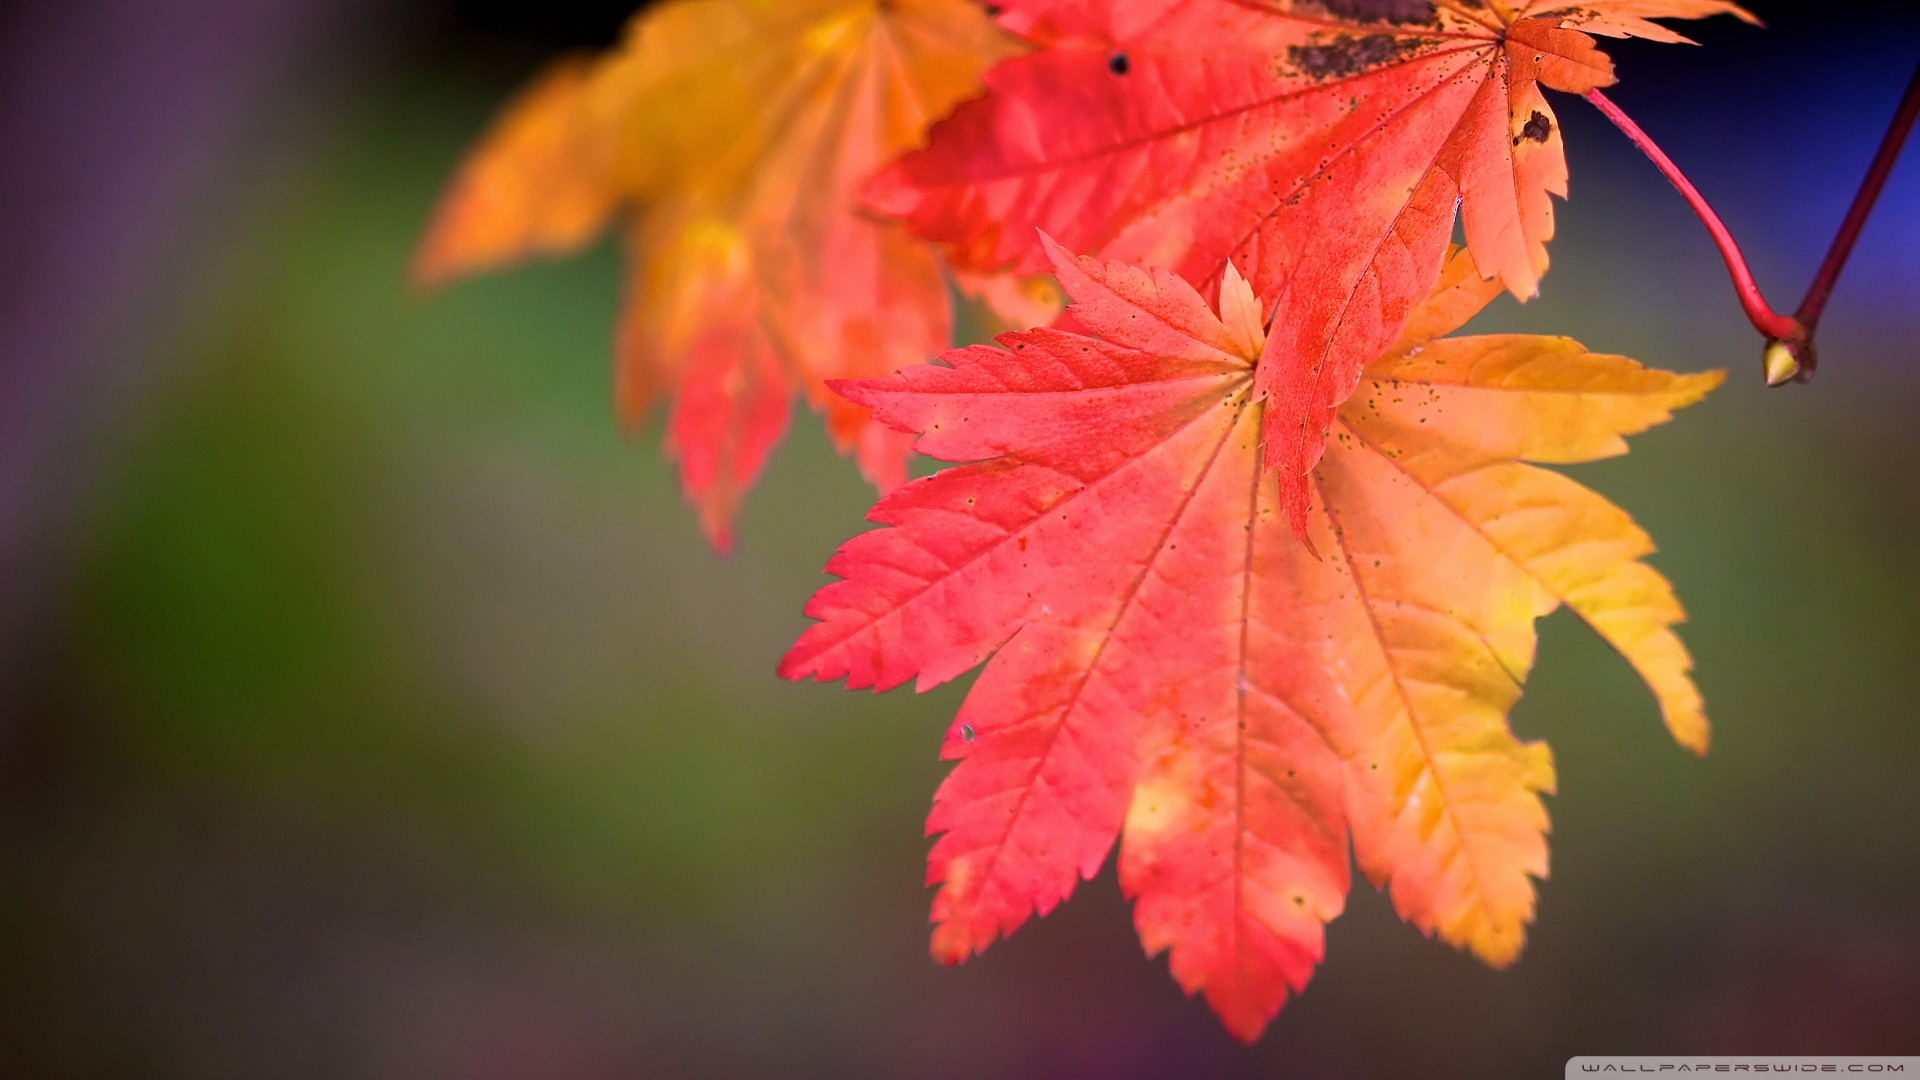 Fall leaves wallpaper   942970 1920x1080